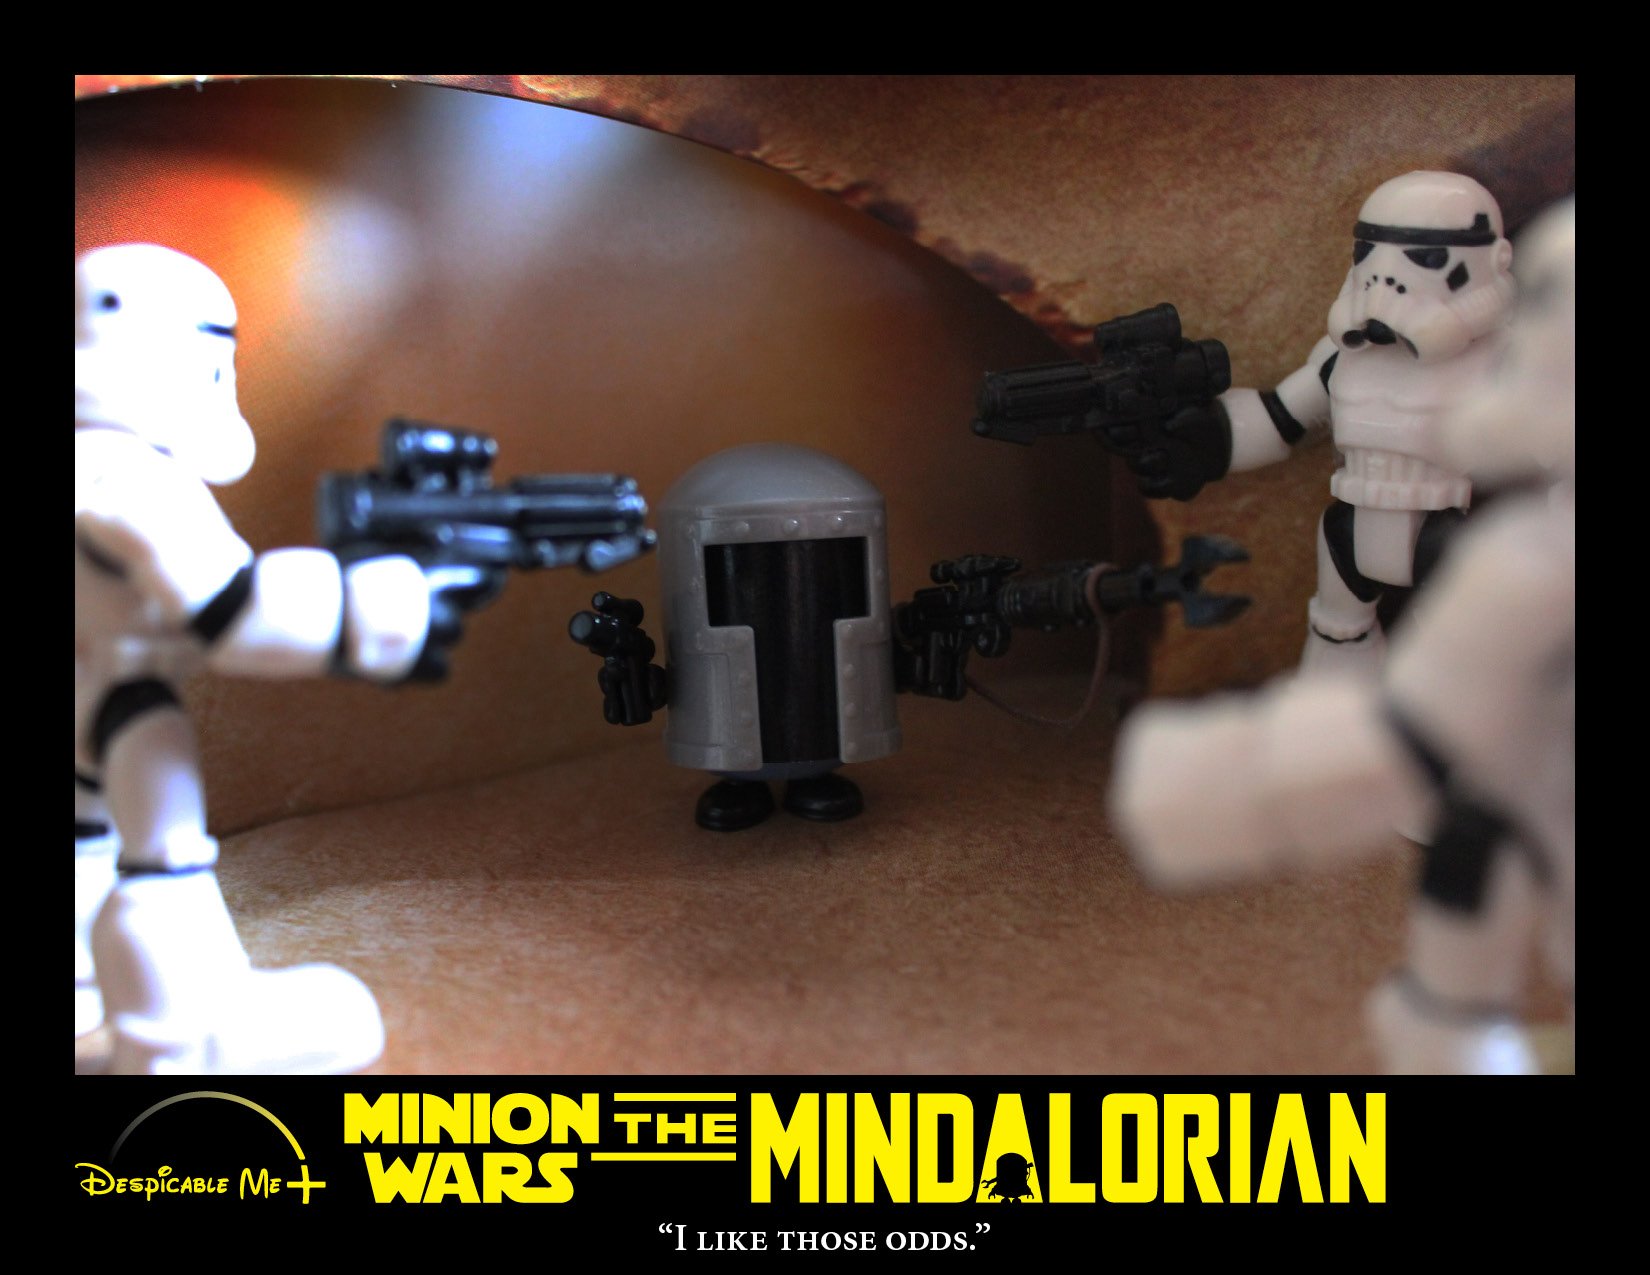 The Mindalorian squares off against Stormtroopers.